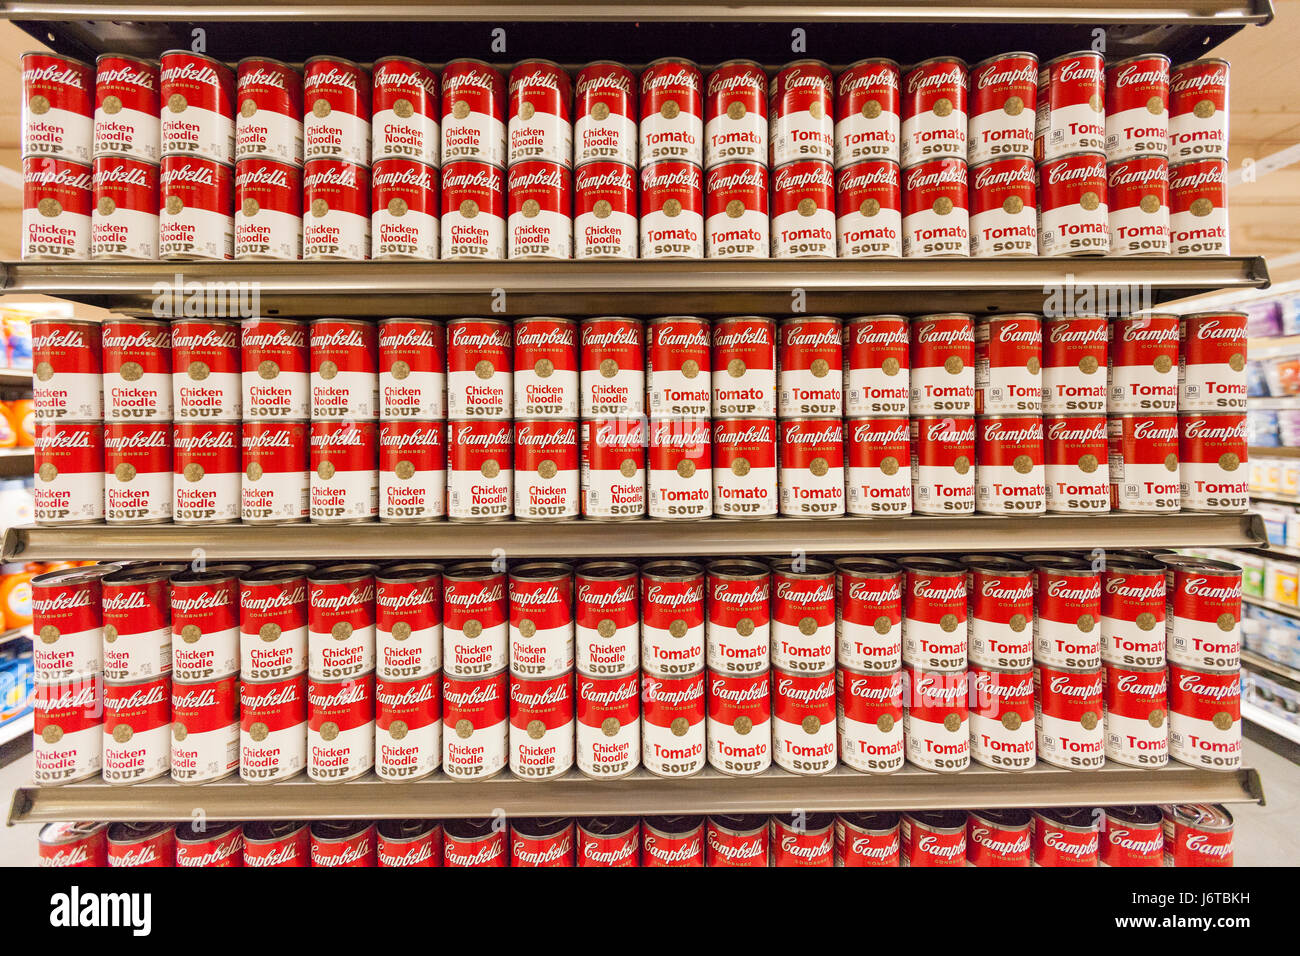 A Display Of Cambells Tomato Soup Cans On Display On Shelves